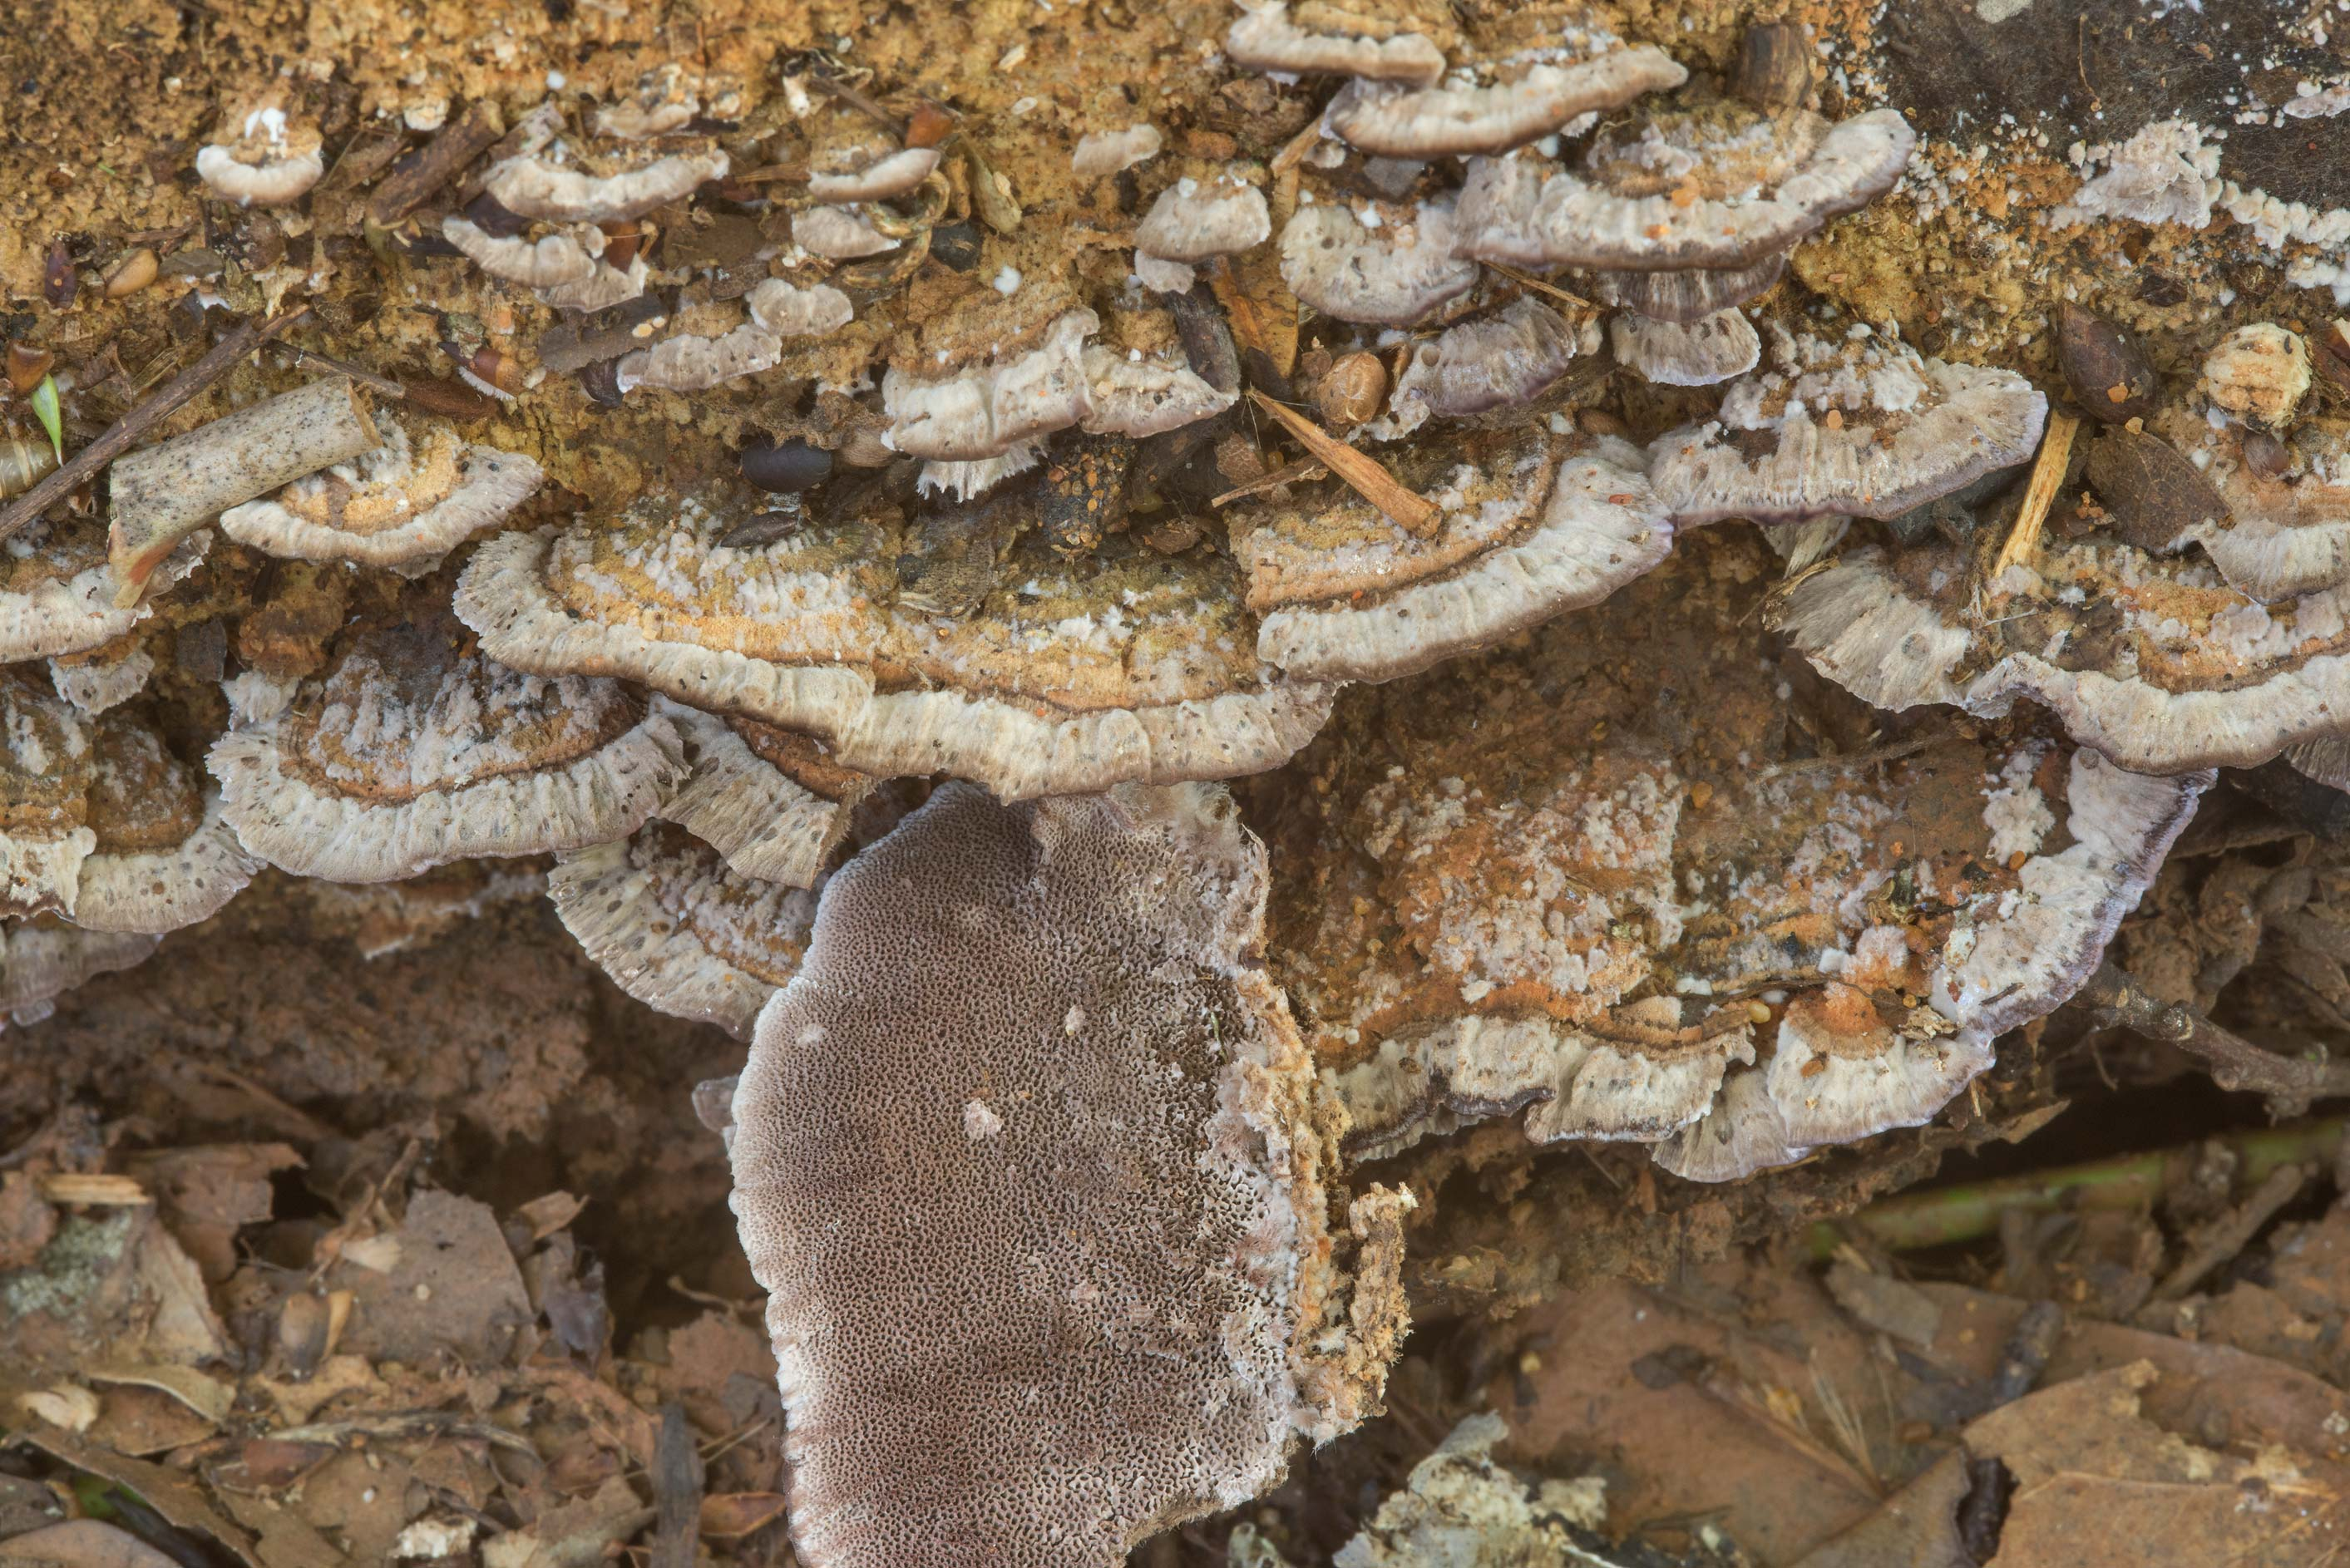 Polypore mushrooms Trichaptum sector in Lick Creek Park. College Station, Texas